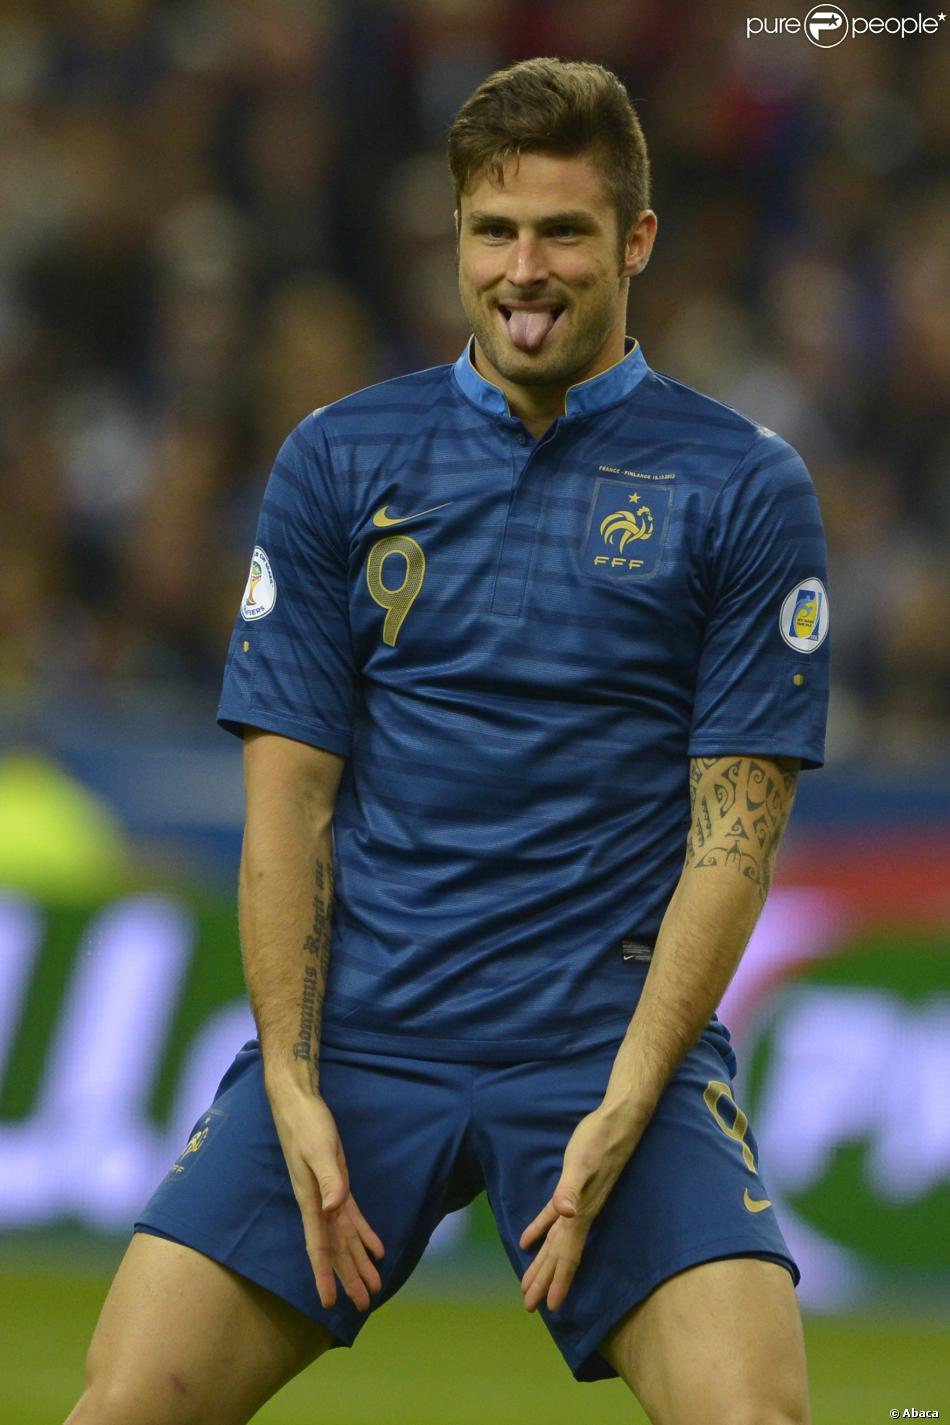 1390619-france-s-olivier-giroud-during-a-950x0-1